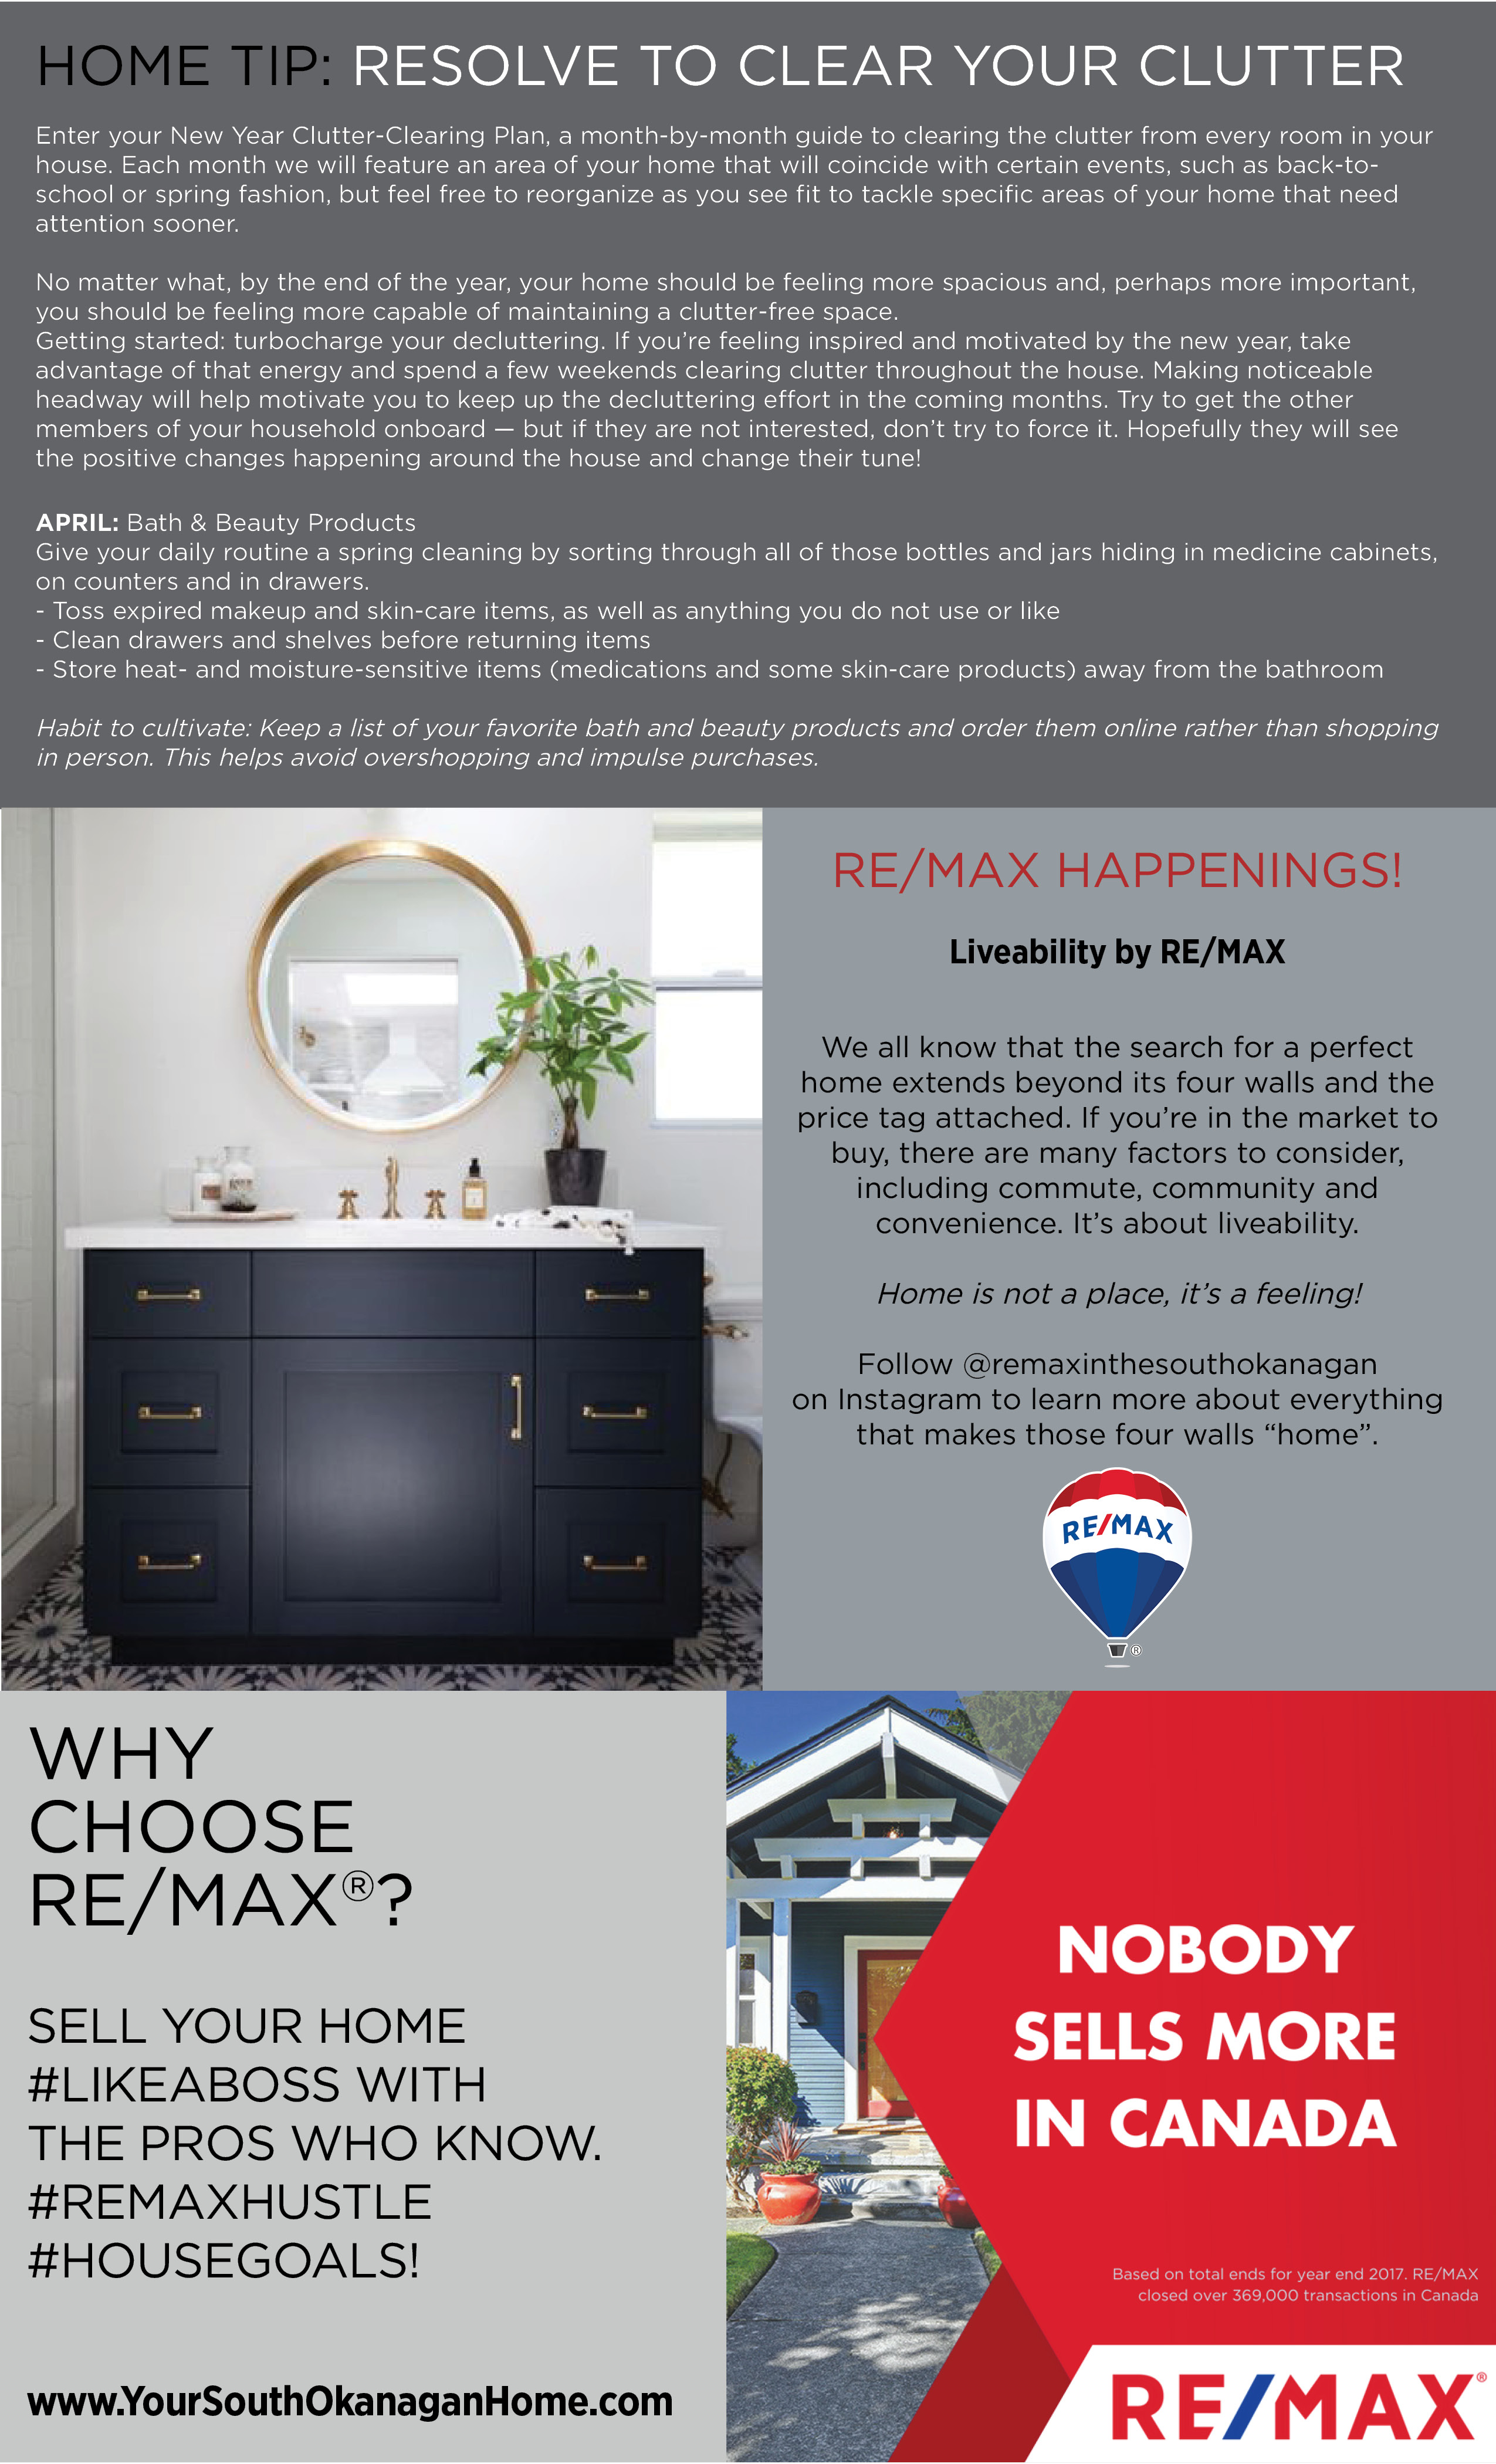 WEBIMAGES: April 2018 REMAX Newsletter_Page3.jpg